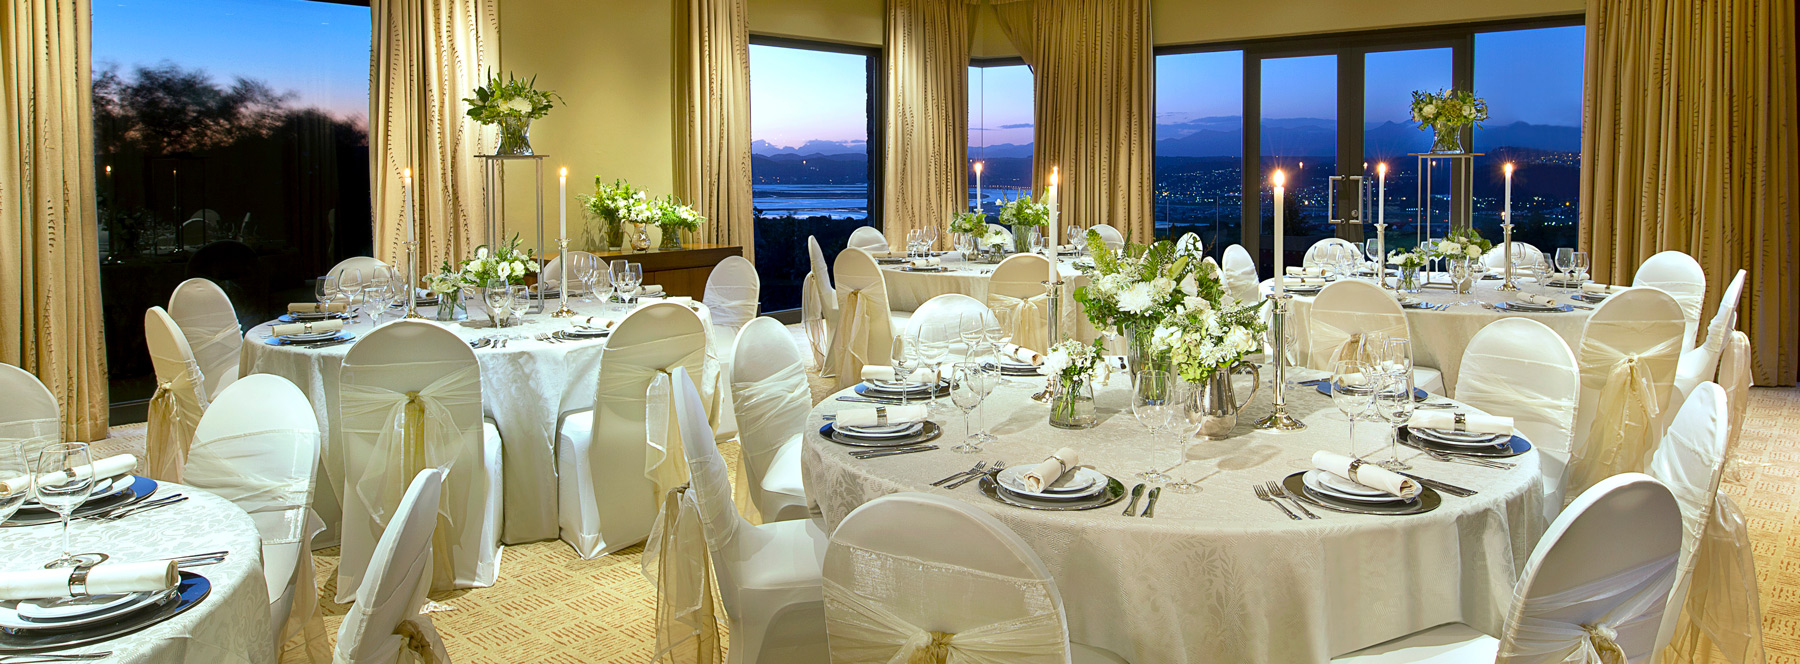 wedding venue in knysna